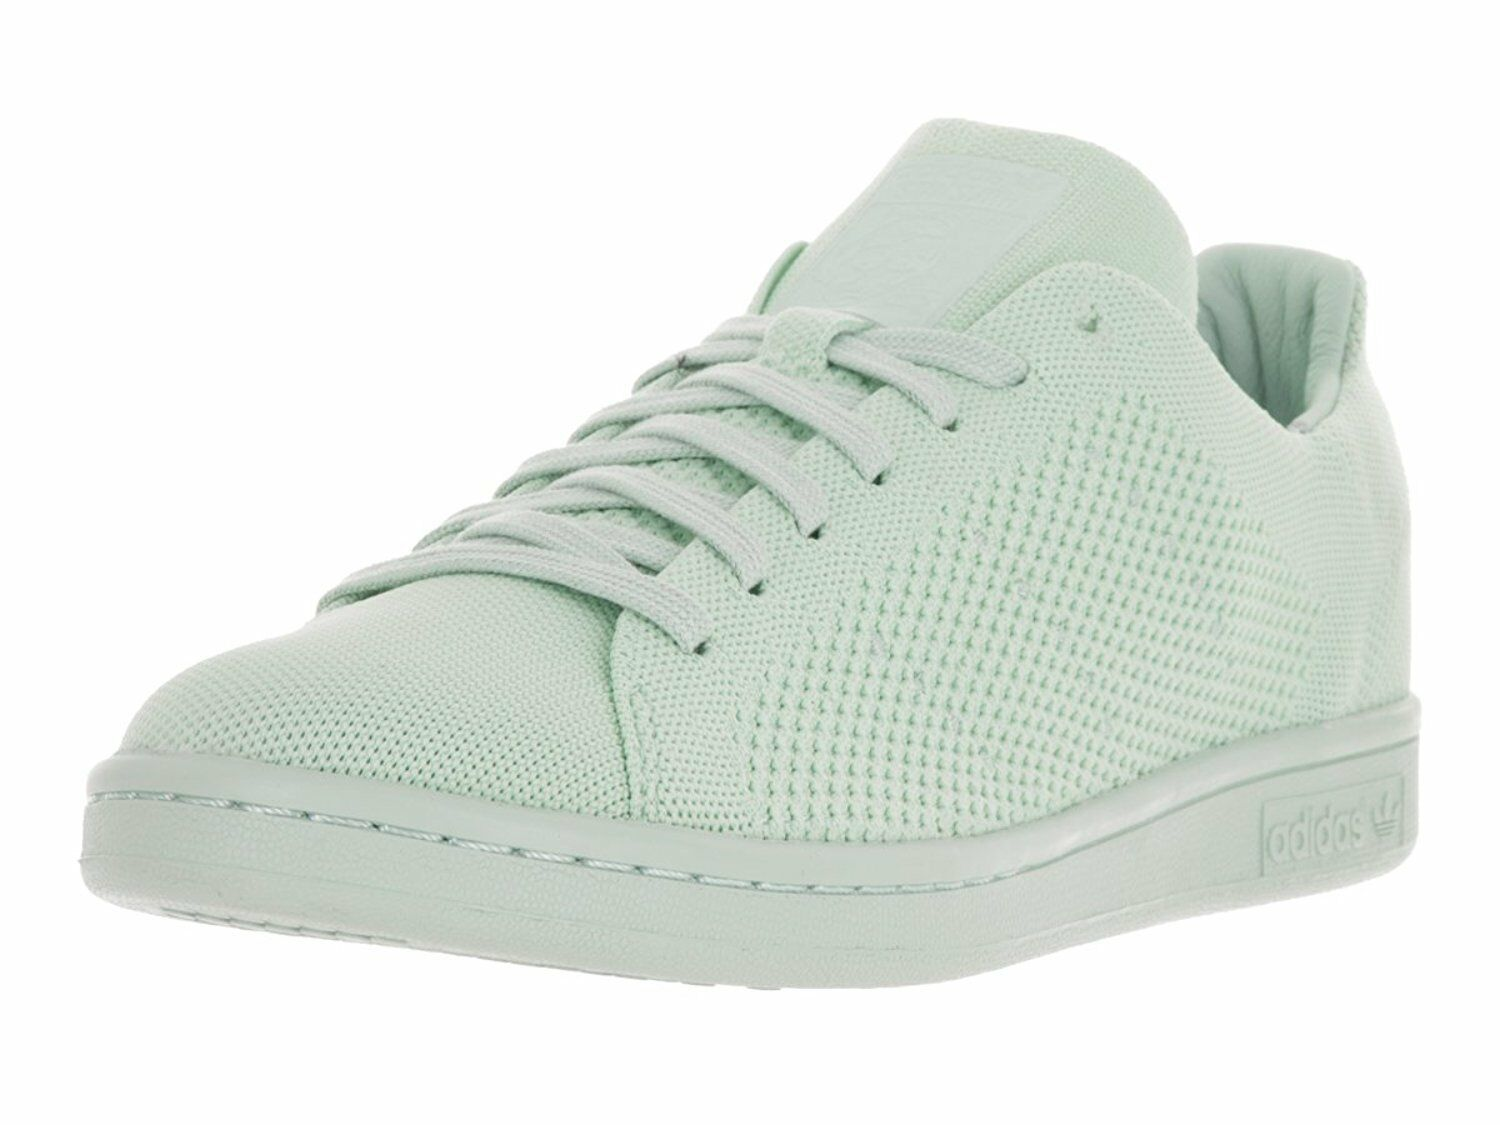 Adidas Homme Originals Stan Smith Og Pk Fashion Sneaker Vapor Vert S80066